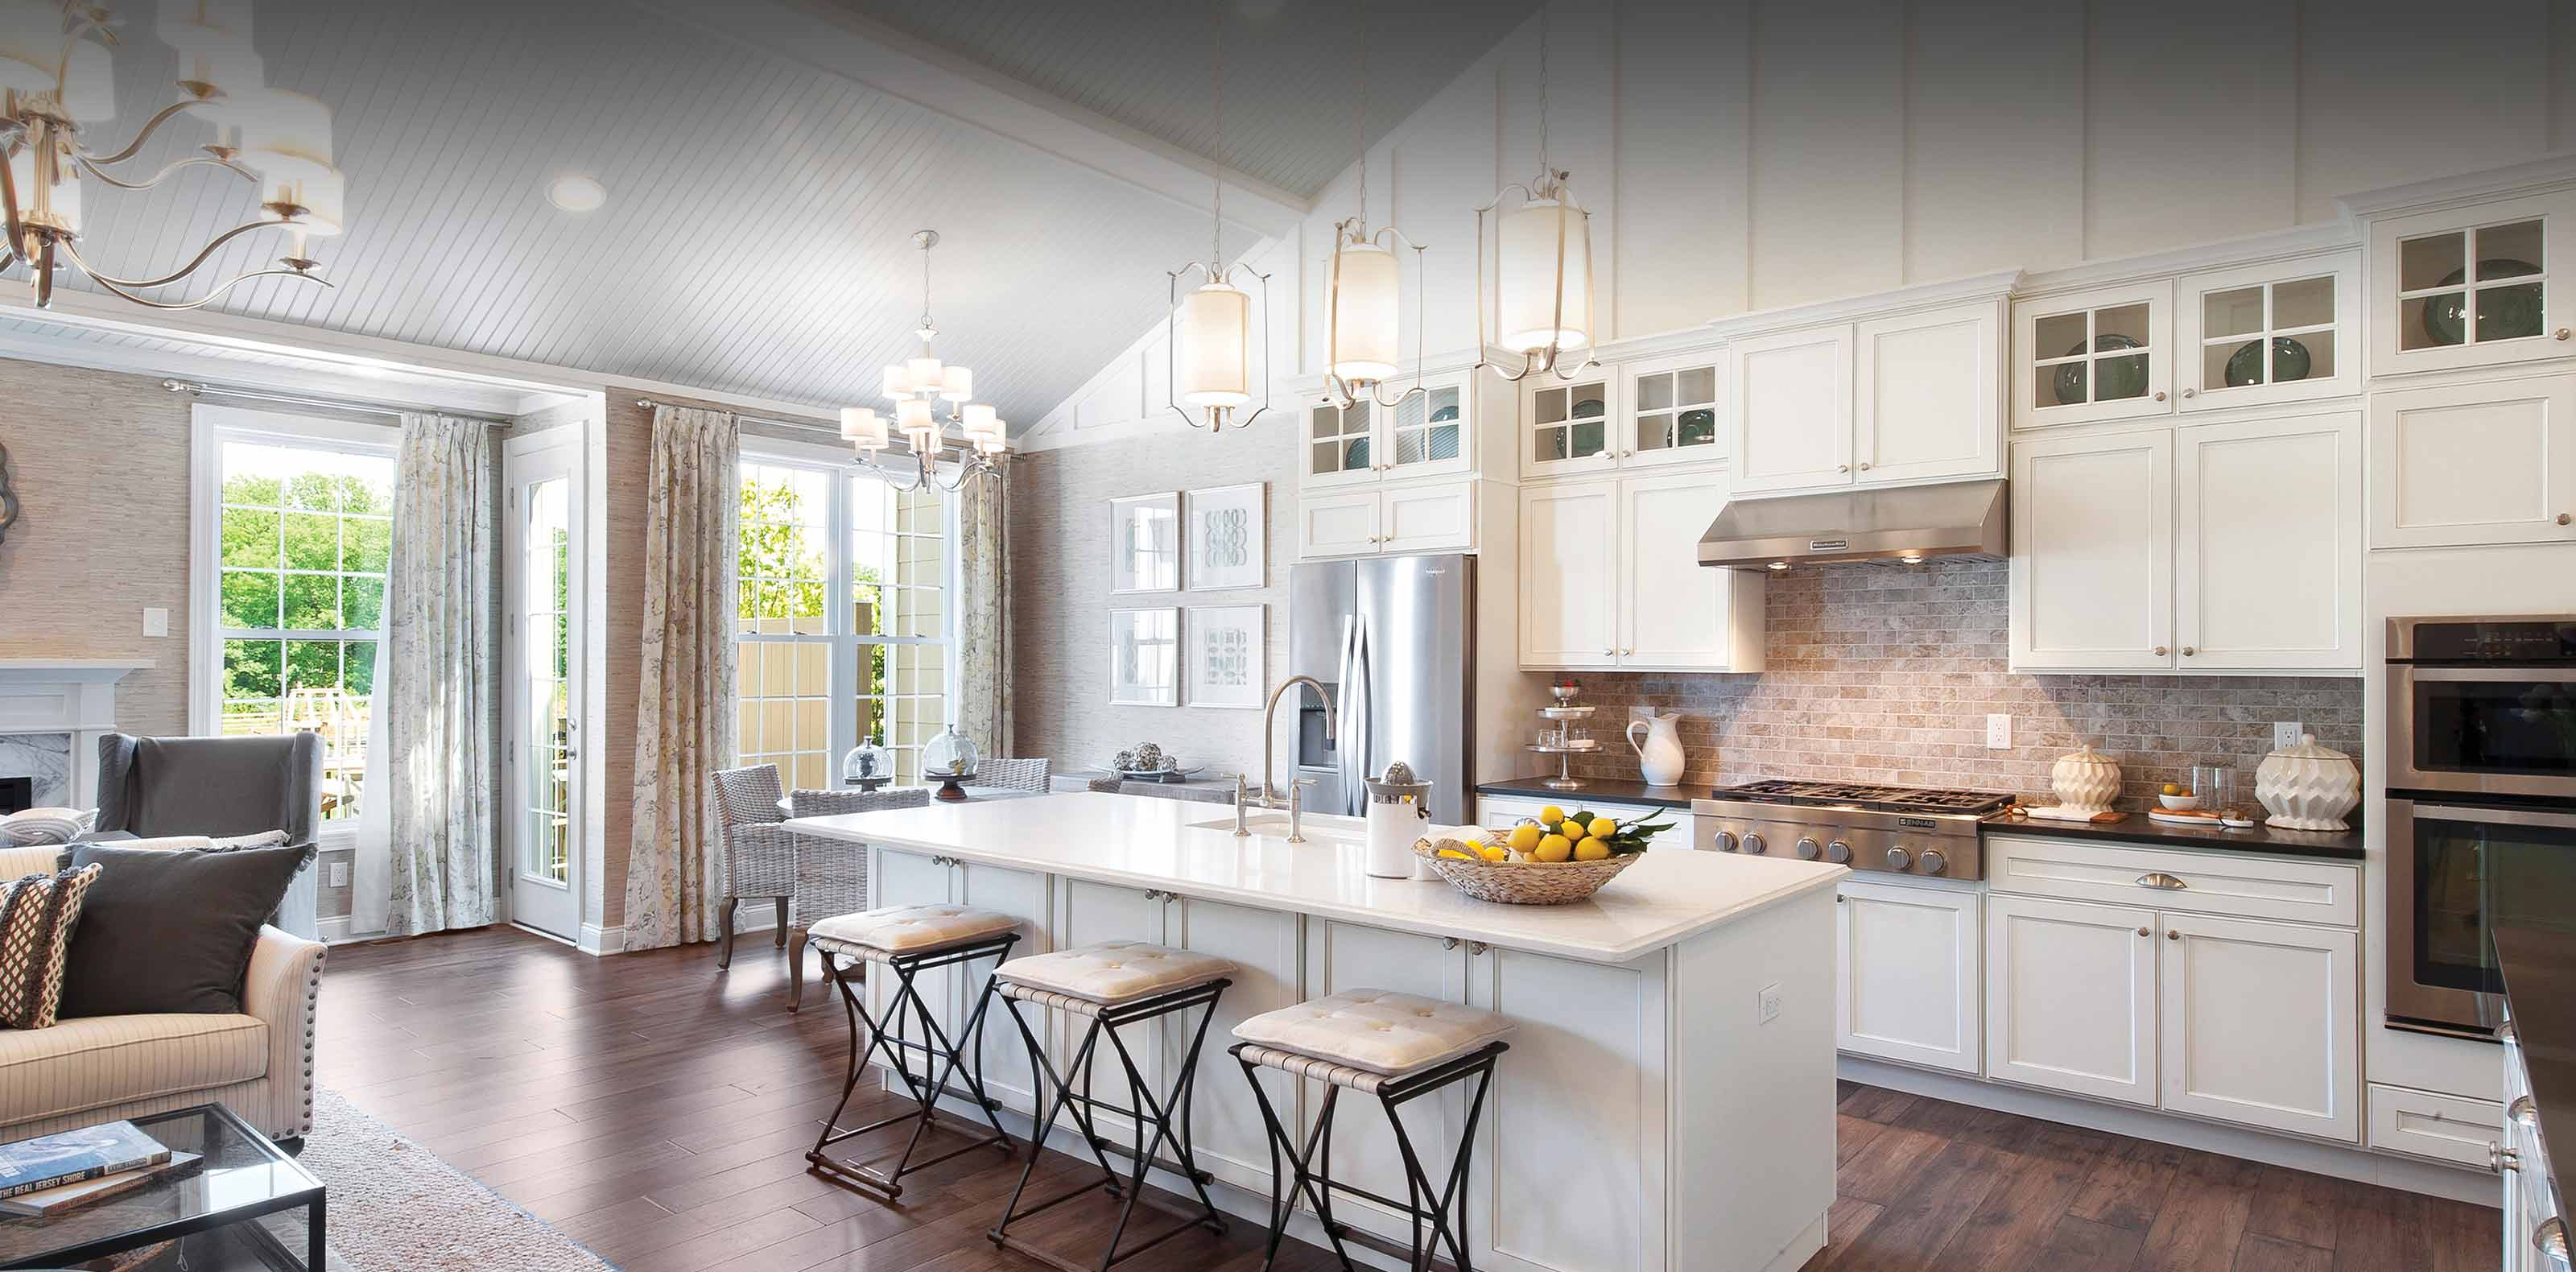 New Construction Homes for Sale | Toll Brothers® Luxury Homes